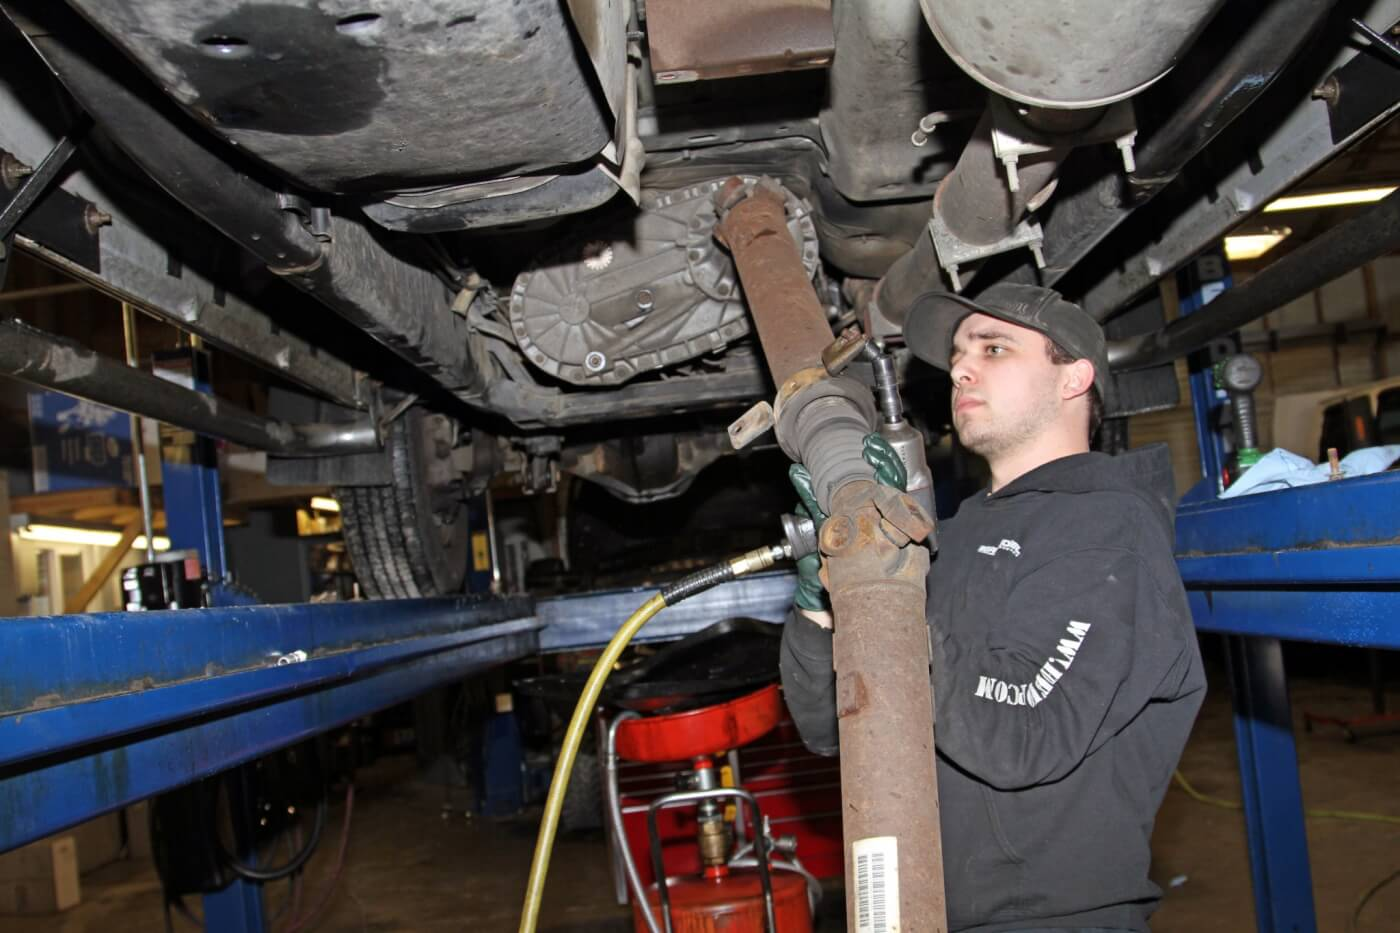 3. Then, he unbolted the rear drive shaft from the rear axle and carrier-bearing mount before removing the drive shaft.